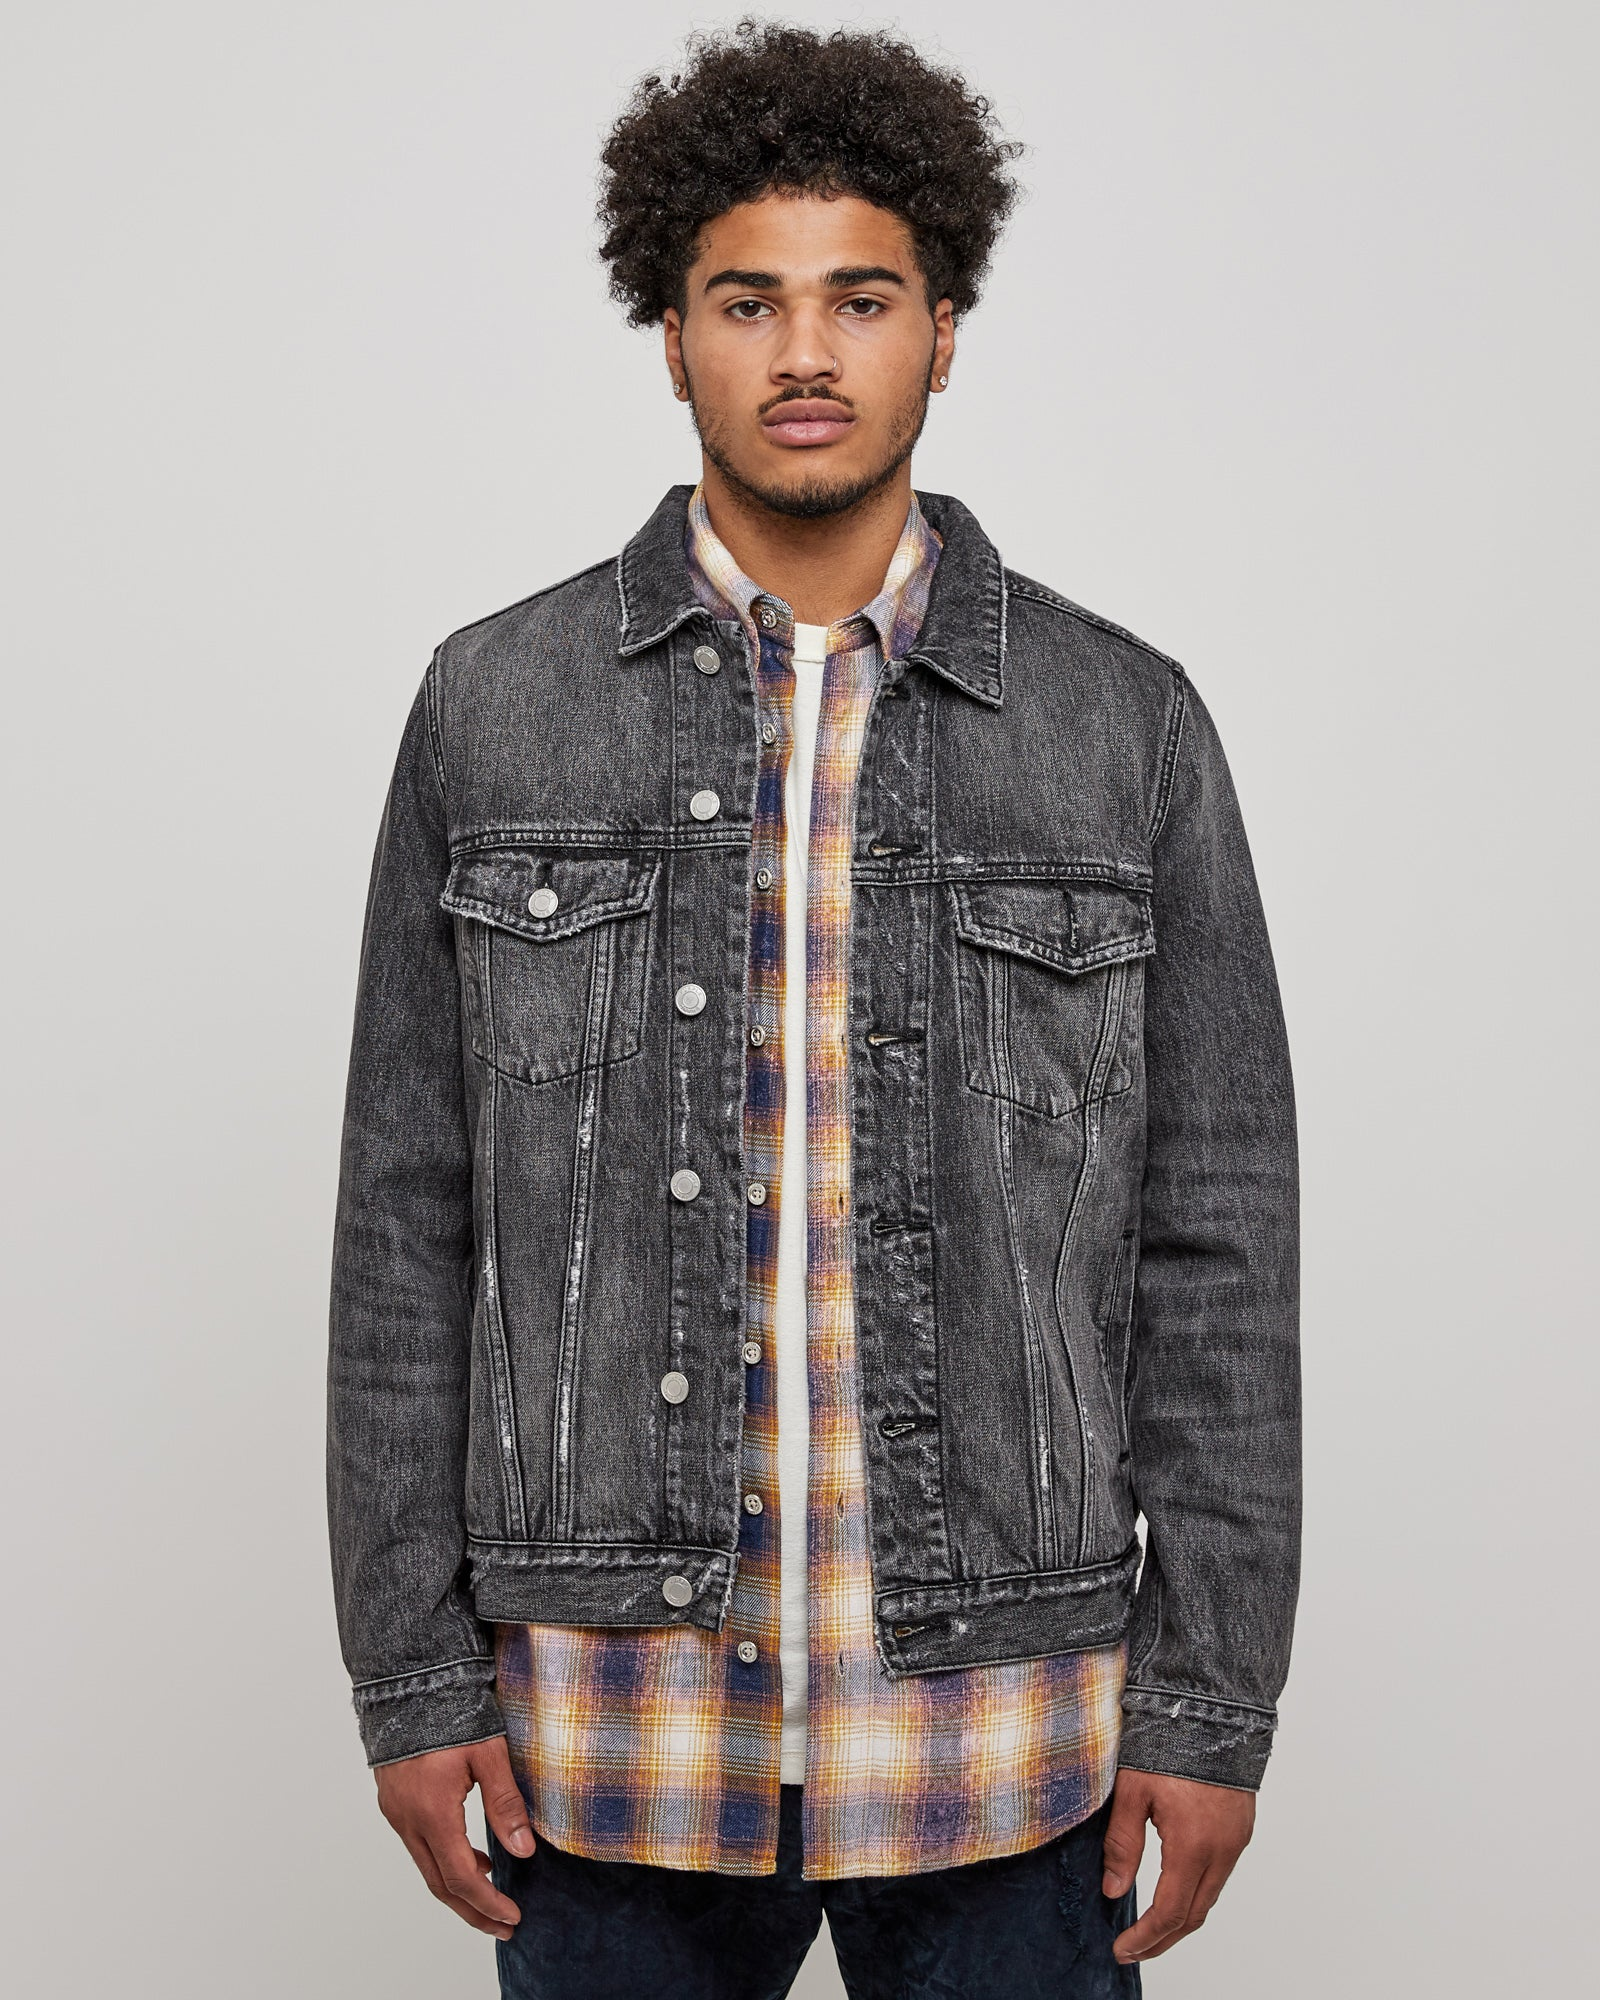 006 Classic Fit Jacket in Black Wash